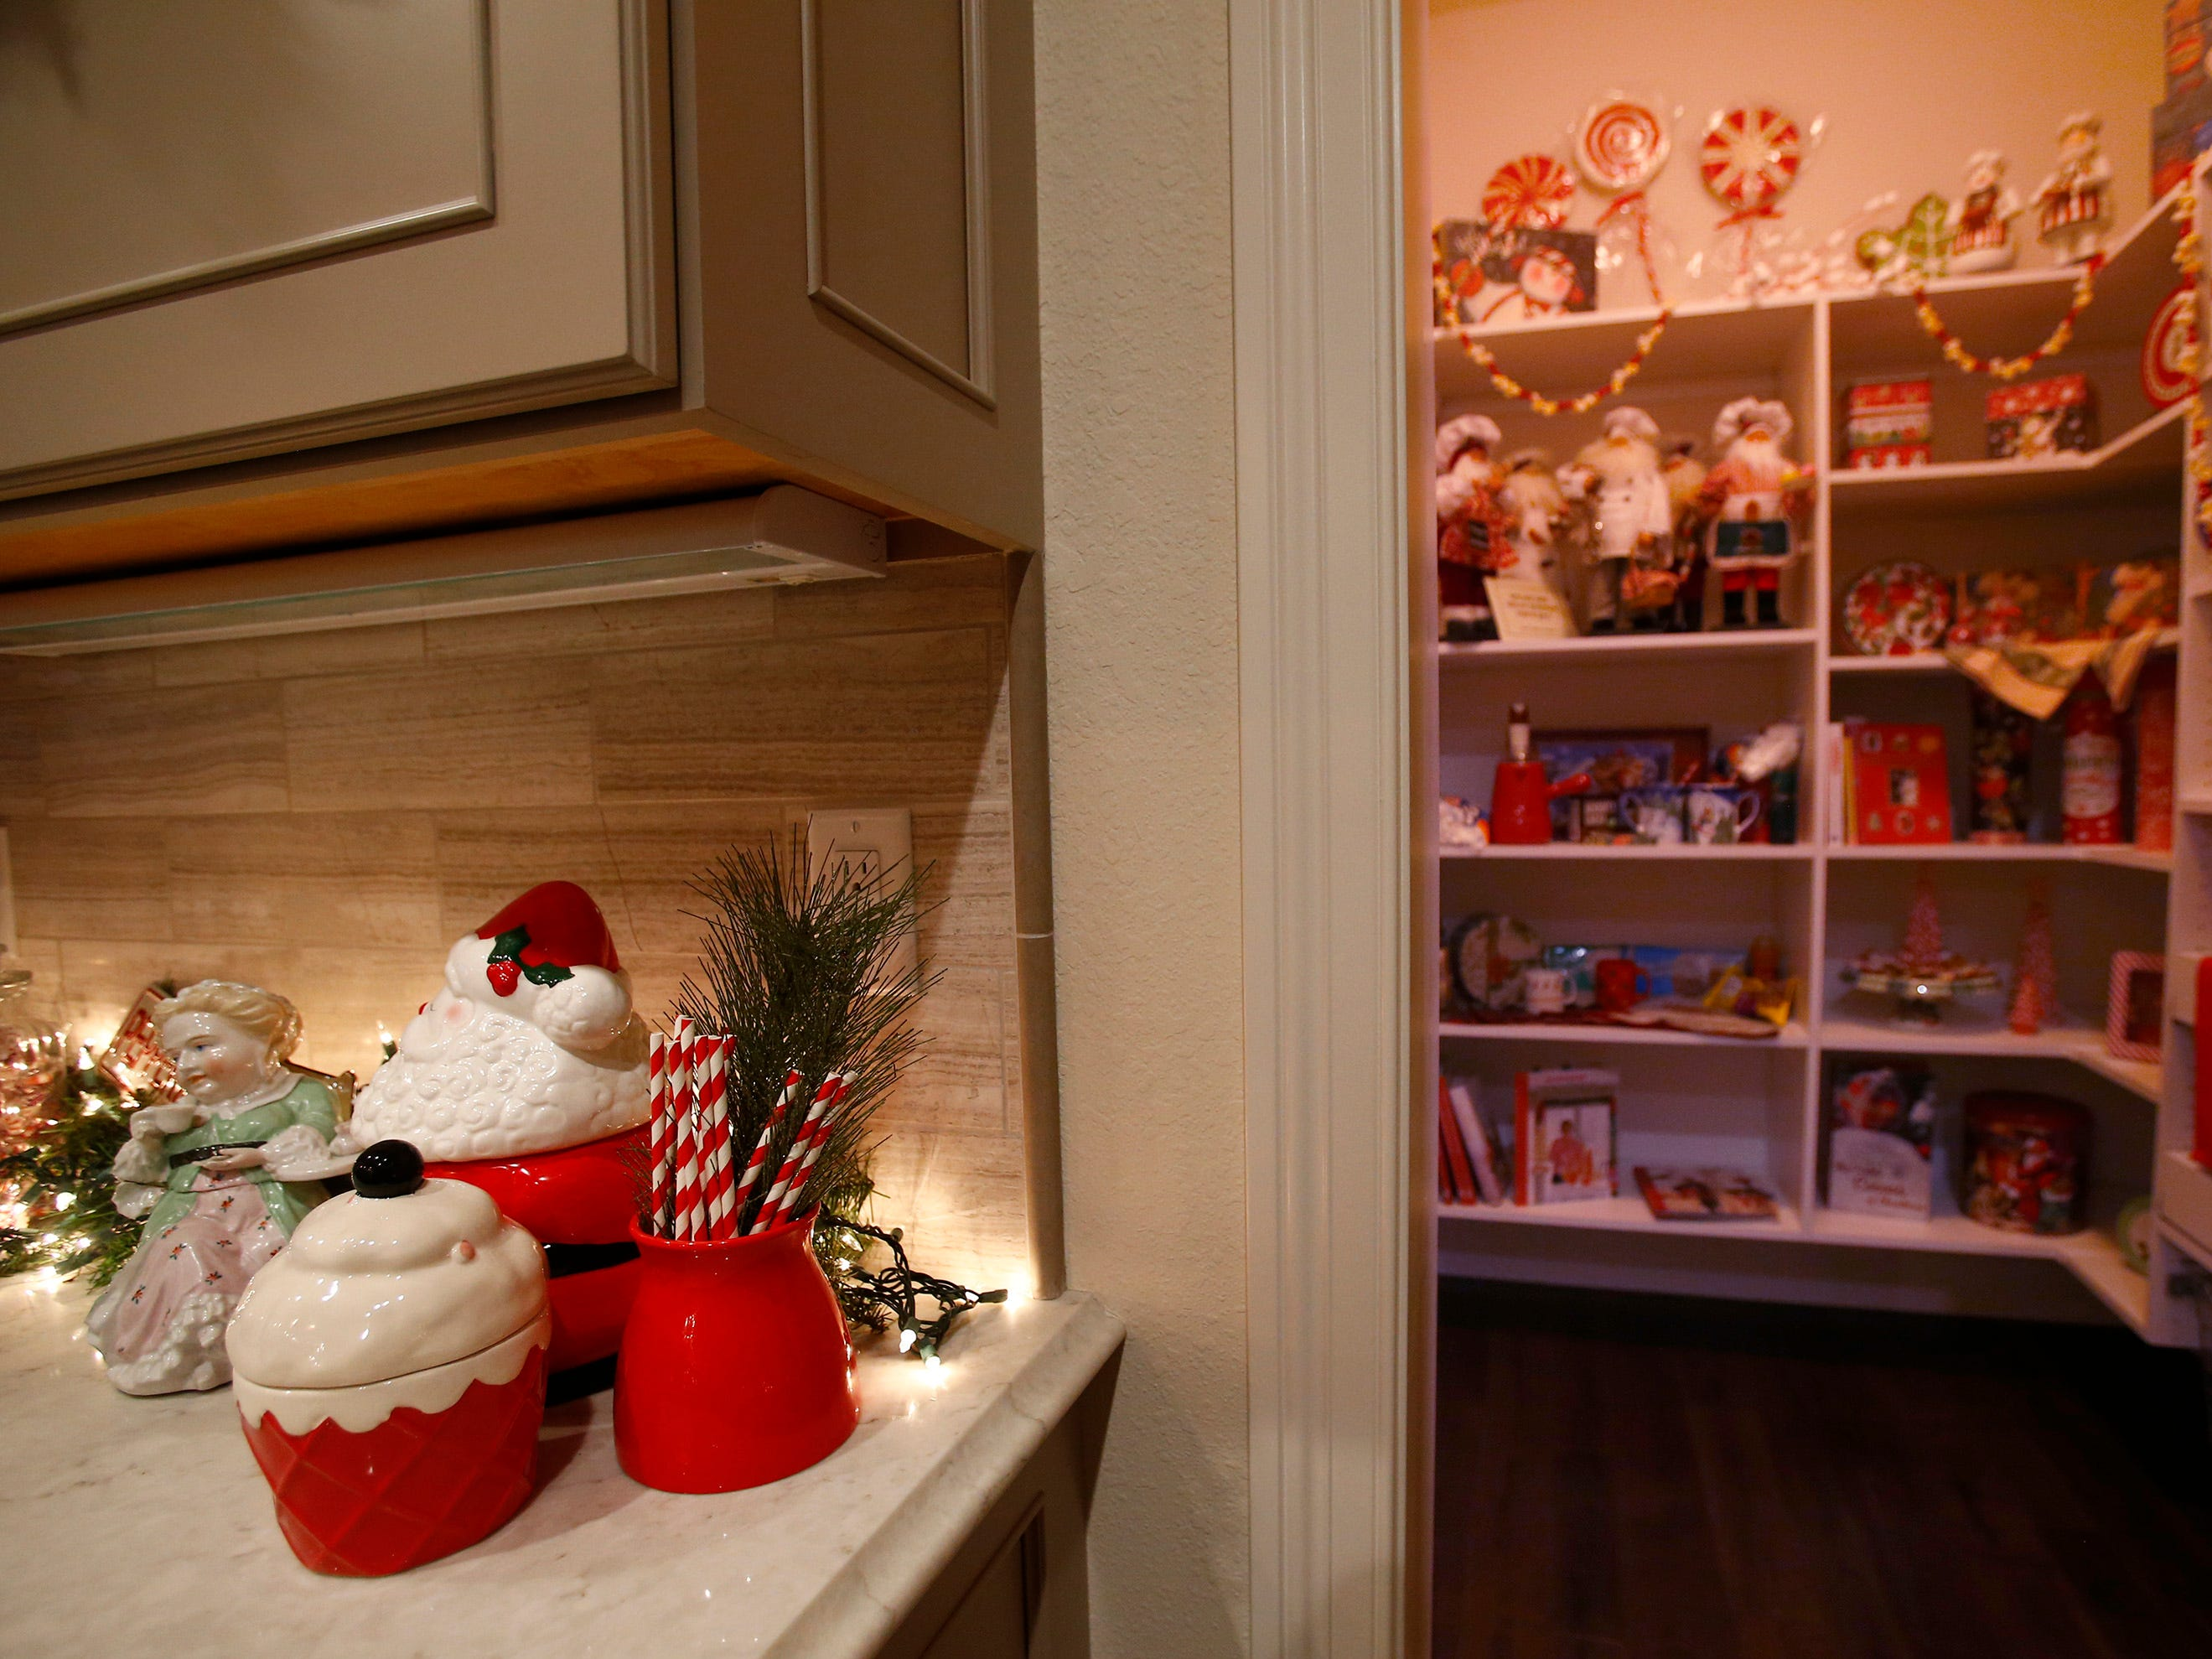 A corner of the kitchen and pantry is set for the 26th annual Christmas Fantasy House with 18 rooms decorated by more than 16 area decorators to benefit the Ronald McDonald House Charities Eastern Wisconsin. The Fantasy house will be open 10 a.m. to 8 p.m. on Nov. 9, and 10 a.m. to 6 p.m. on Nov. 10 and 11. Parking and shuttle to the House is at Ridgewood Baptist Church, 2720 Lilly Road, Brookfield. Tickets are $20 at the door.